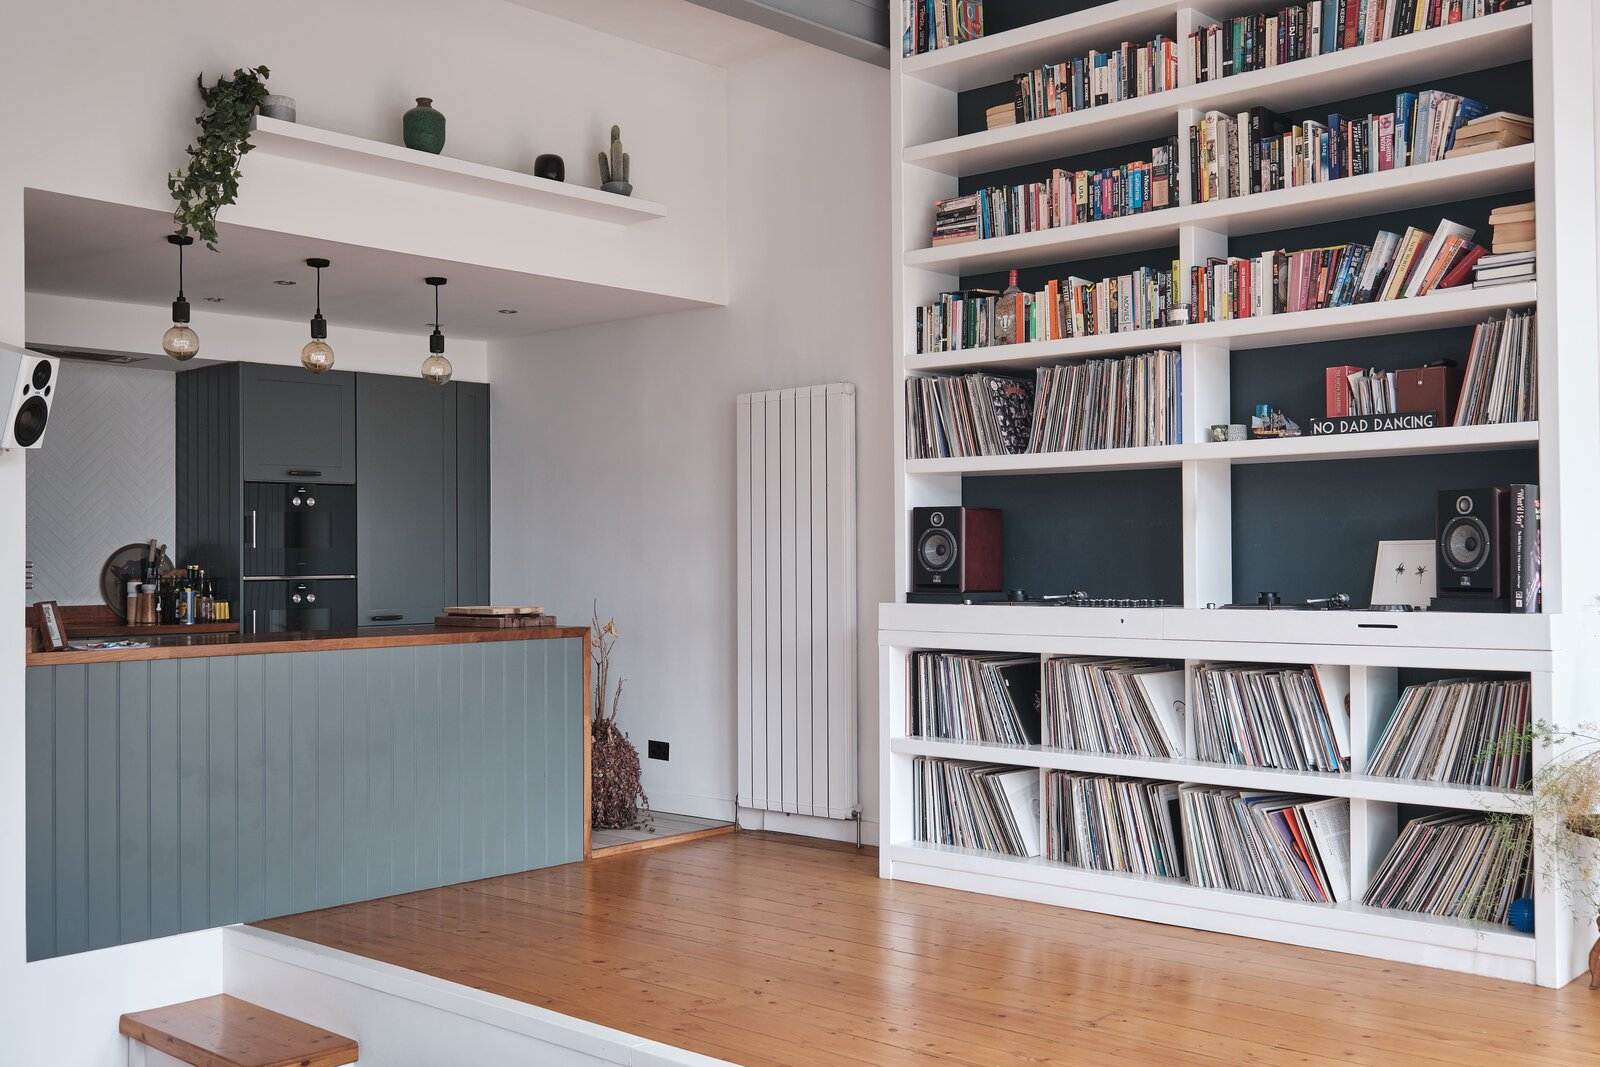 Living Room and Bookcase A upgraded kitchen occupies a cozy alcove opposite the bookcase and opens to the rest of the room. Contrasting, handmade cabinetry fill the space.  Photo 3 of 13 in For £1.2M, Snag This Spacious London Flat Inside a Converted Victorian Schoolhouse